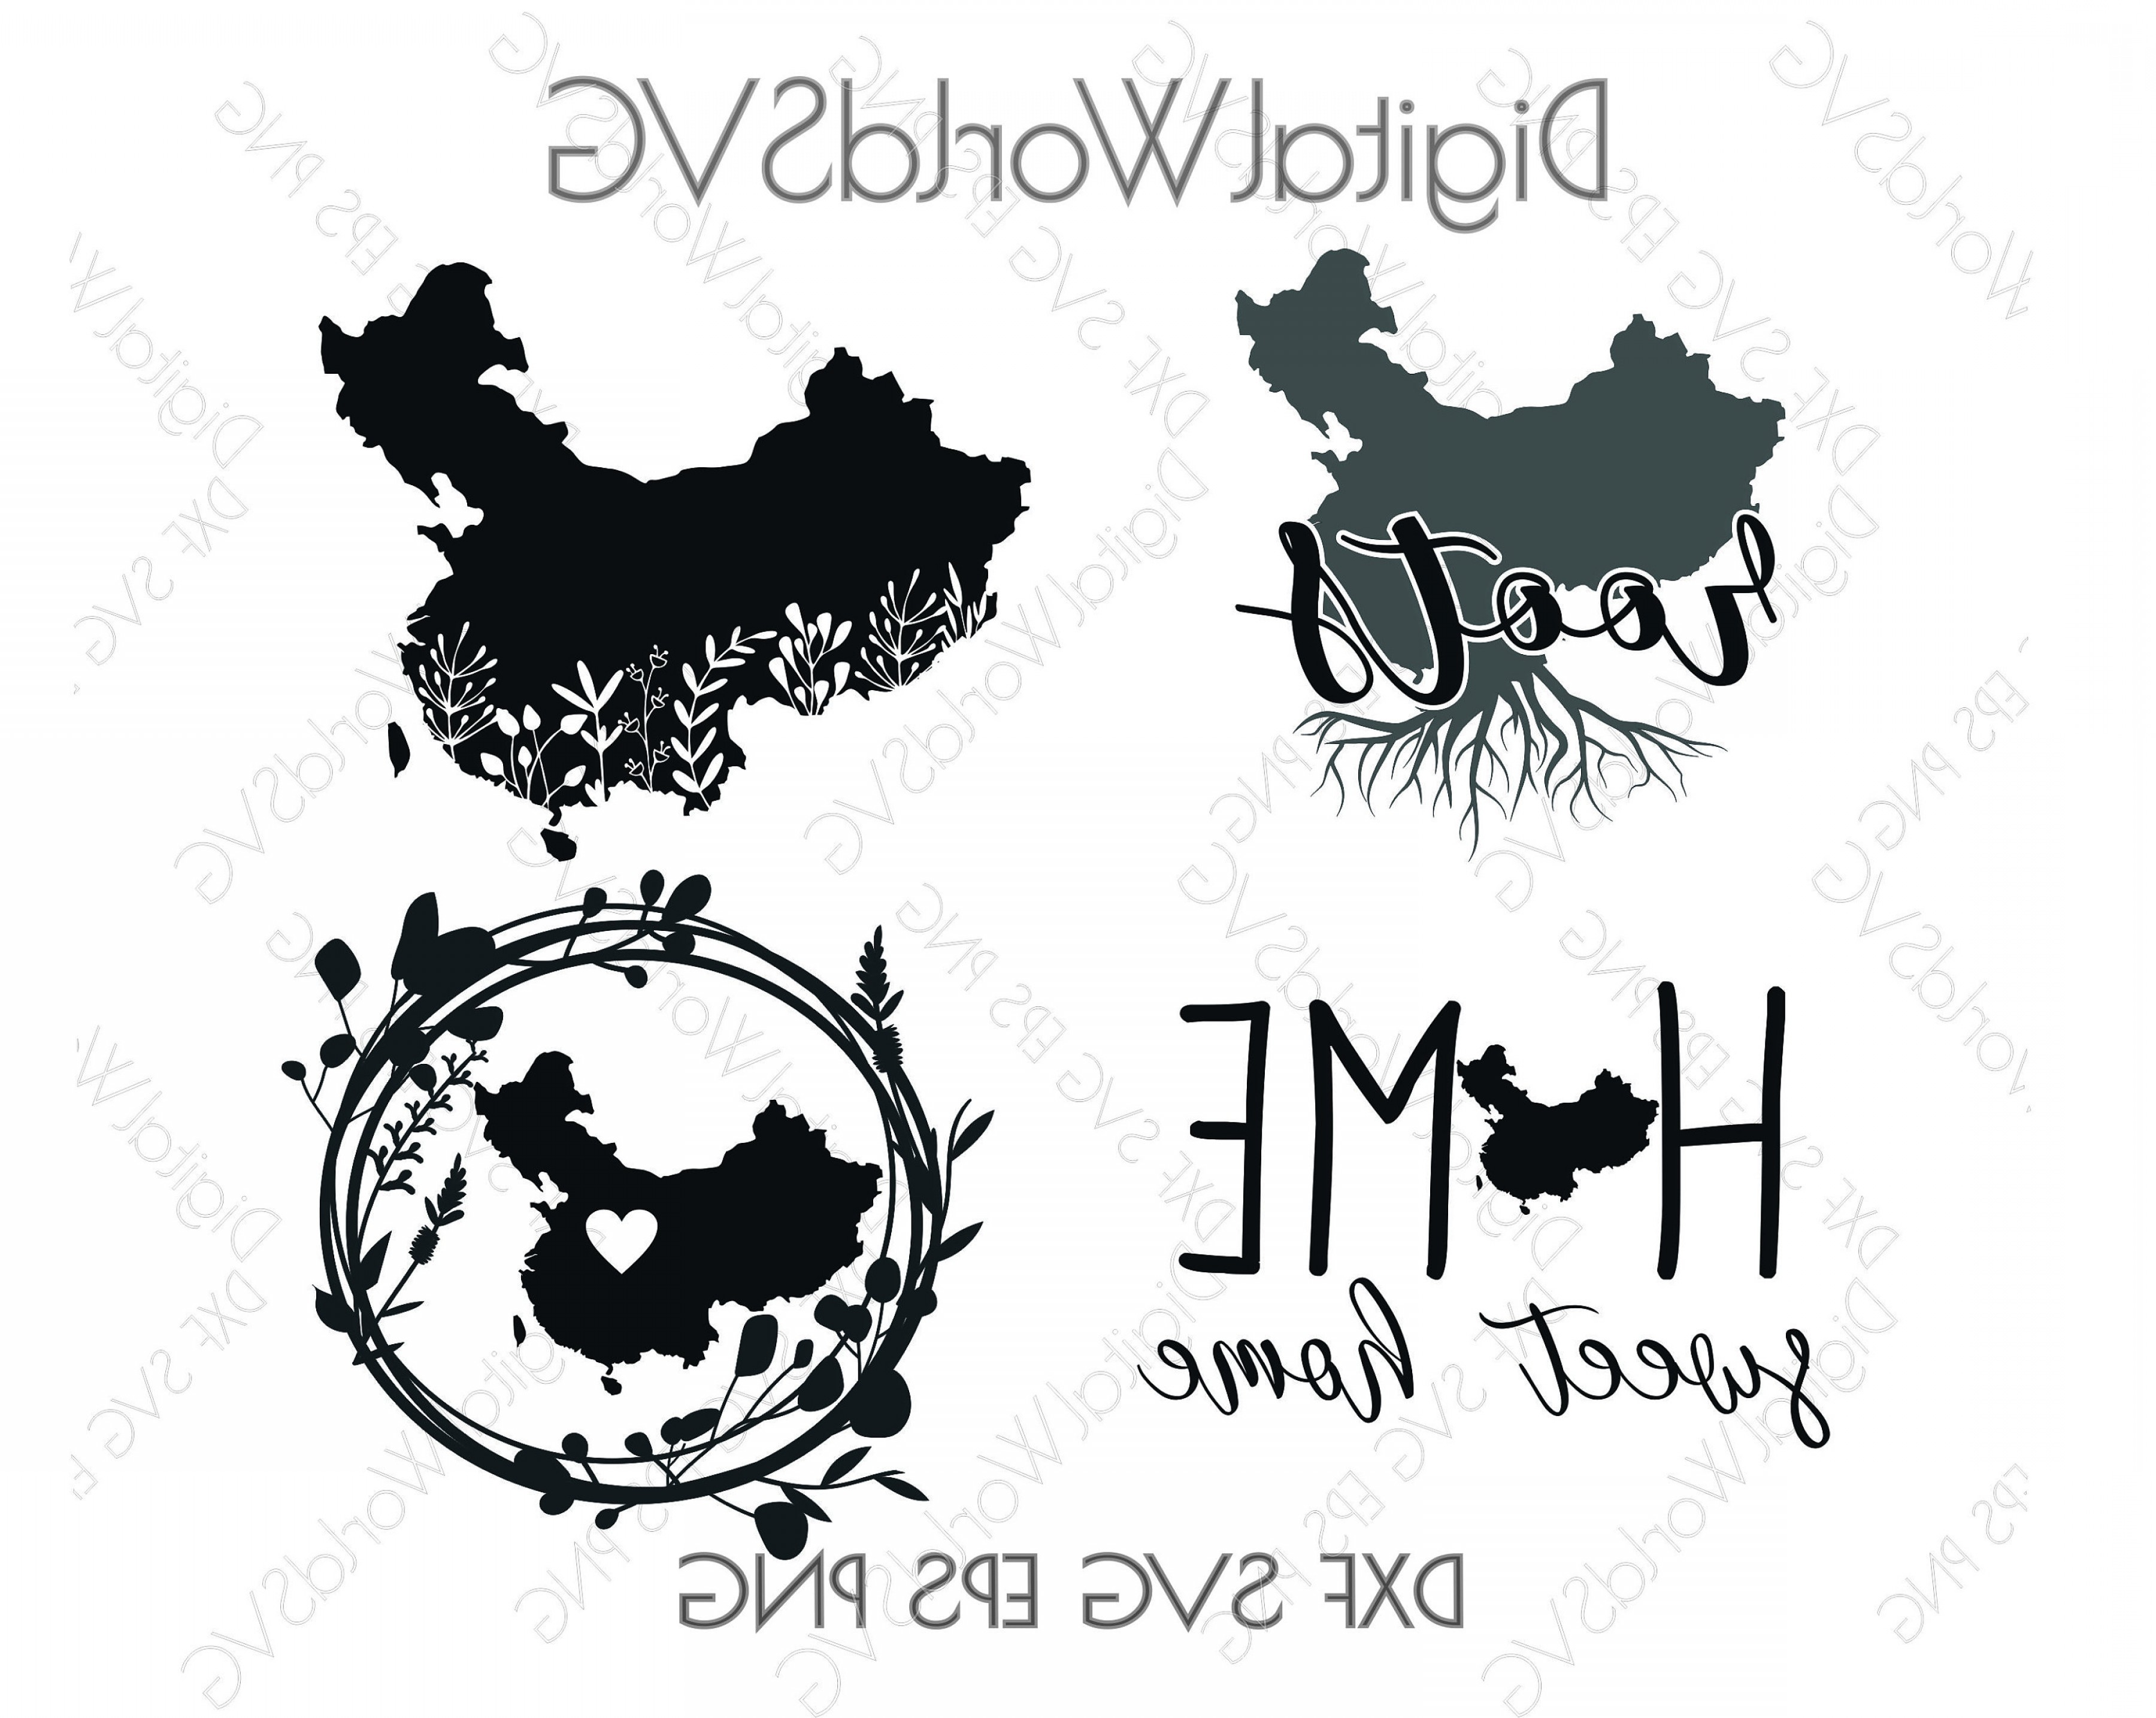 Digital Vector Silhouette: China Digital Vector File Svg Png Dxf